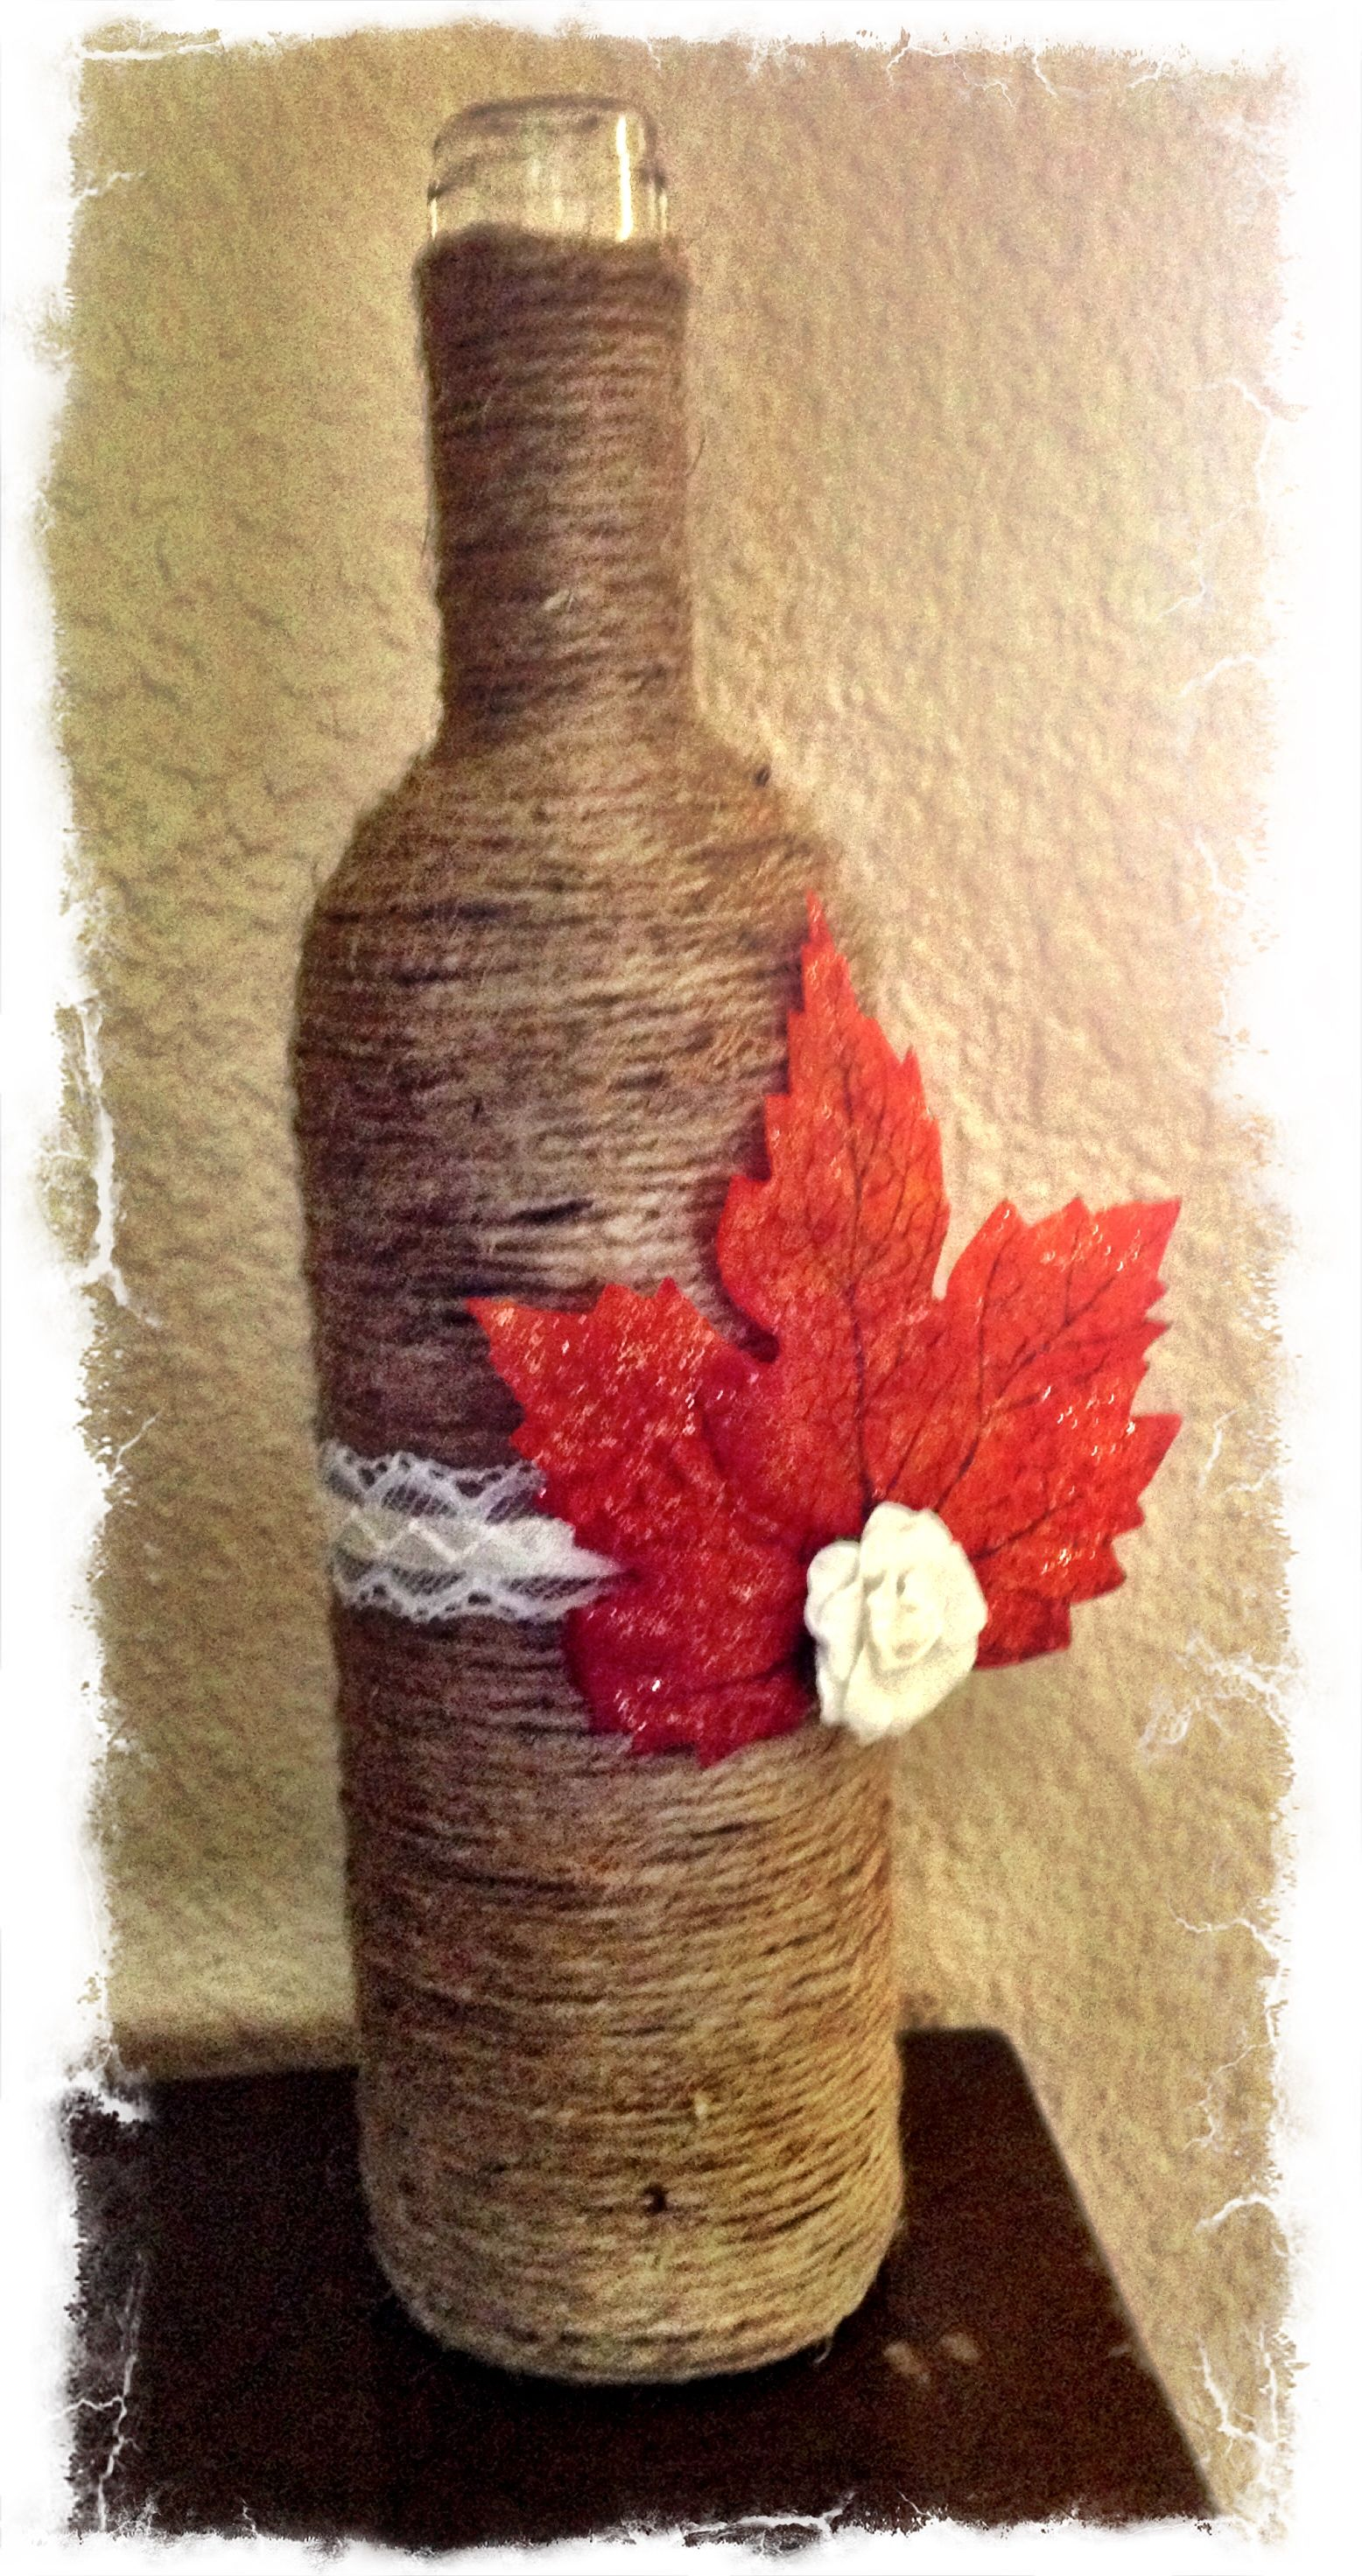 Jute Twine Wrapped Wine Bottle With Flowers Mason Jar Lights Little Pumpkins And Pincecone Na Wine Bottle Crafts Wine Bottle Diy Crafts Wrapped Wine Bottles